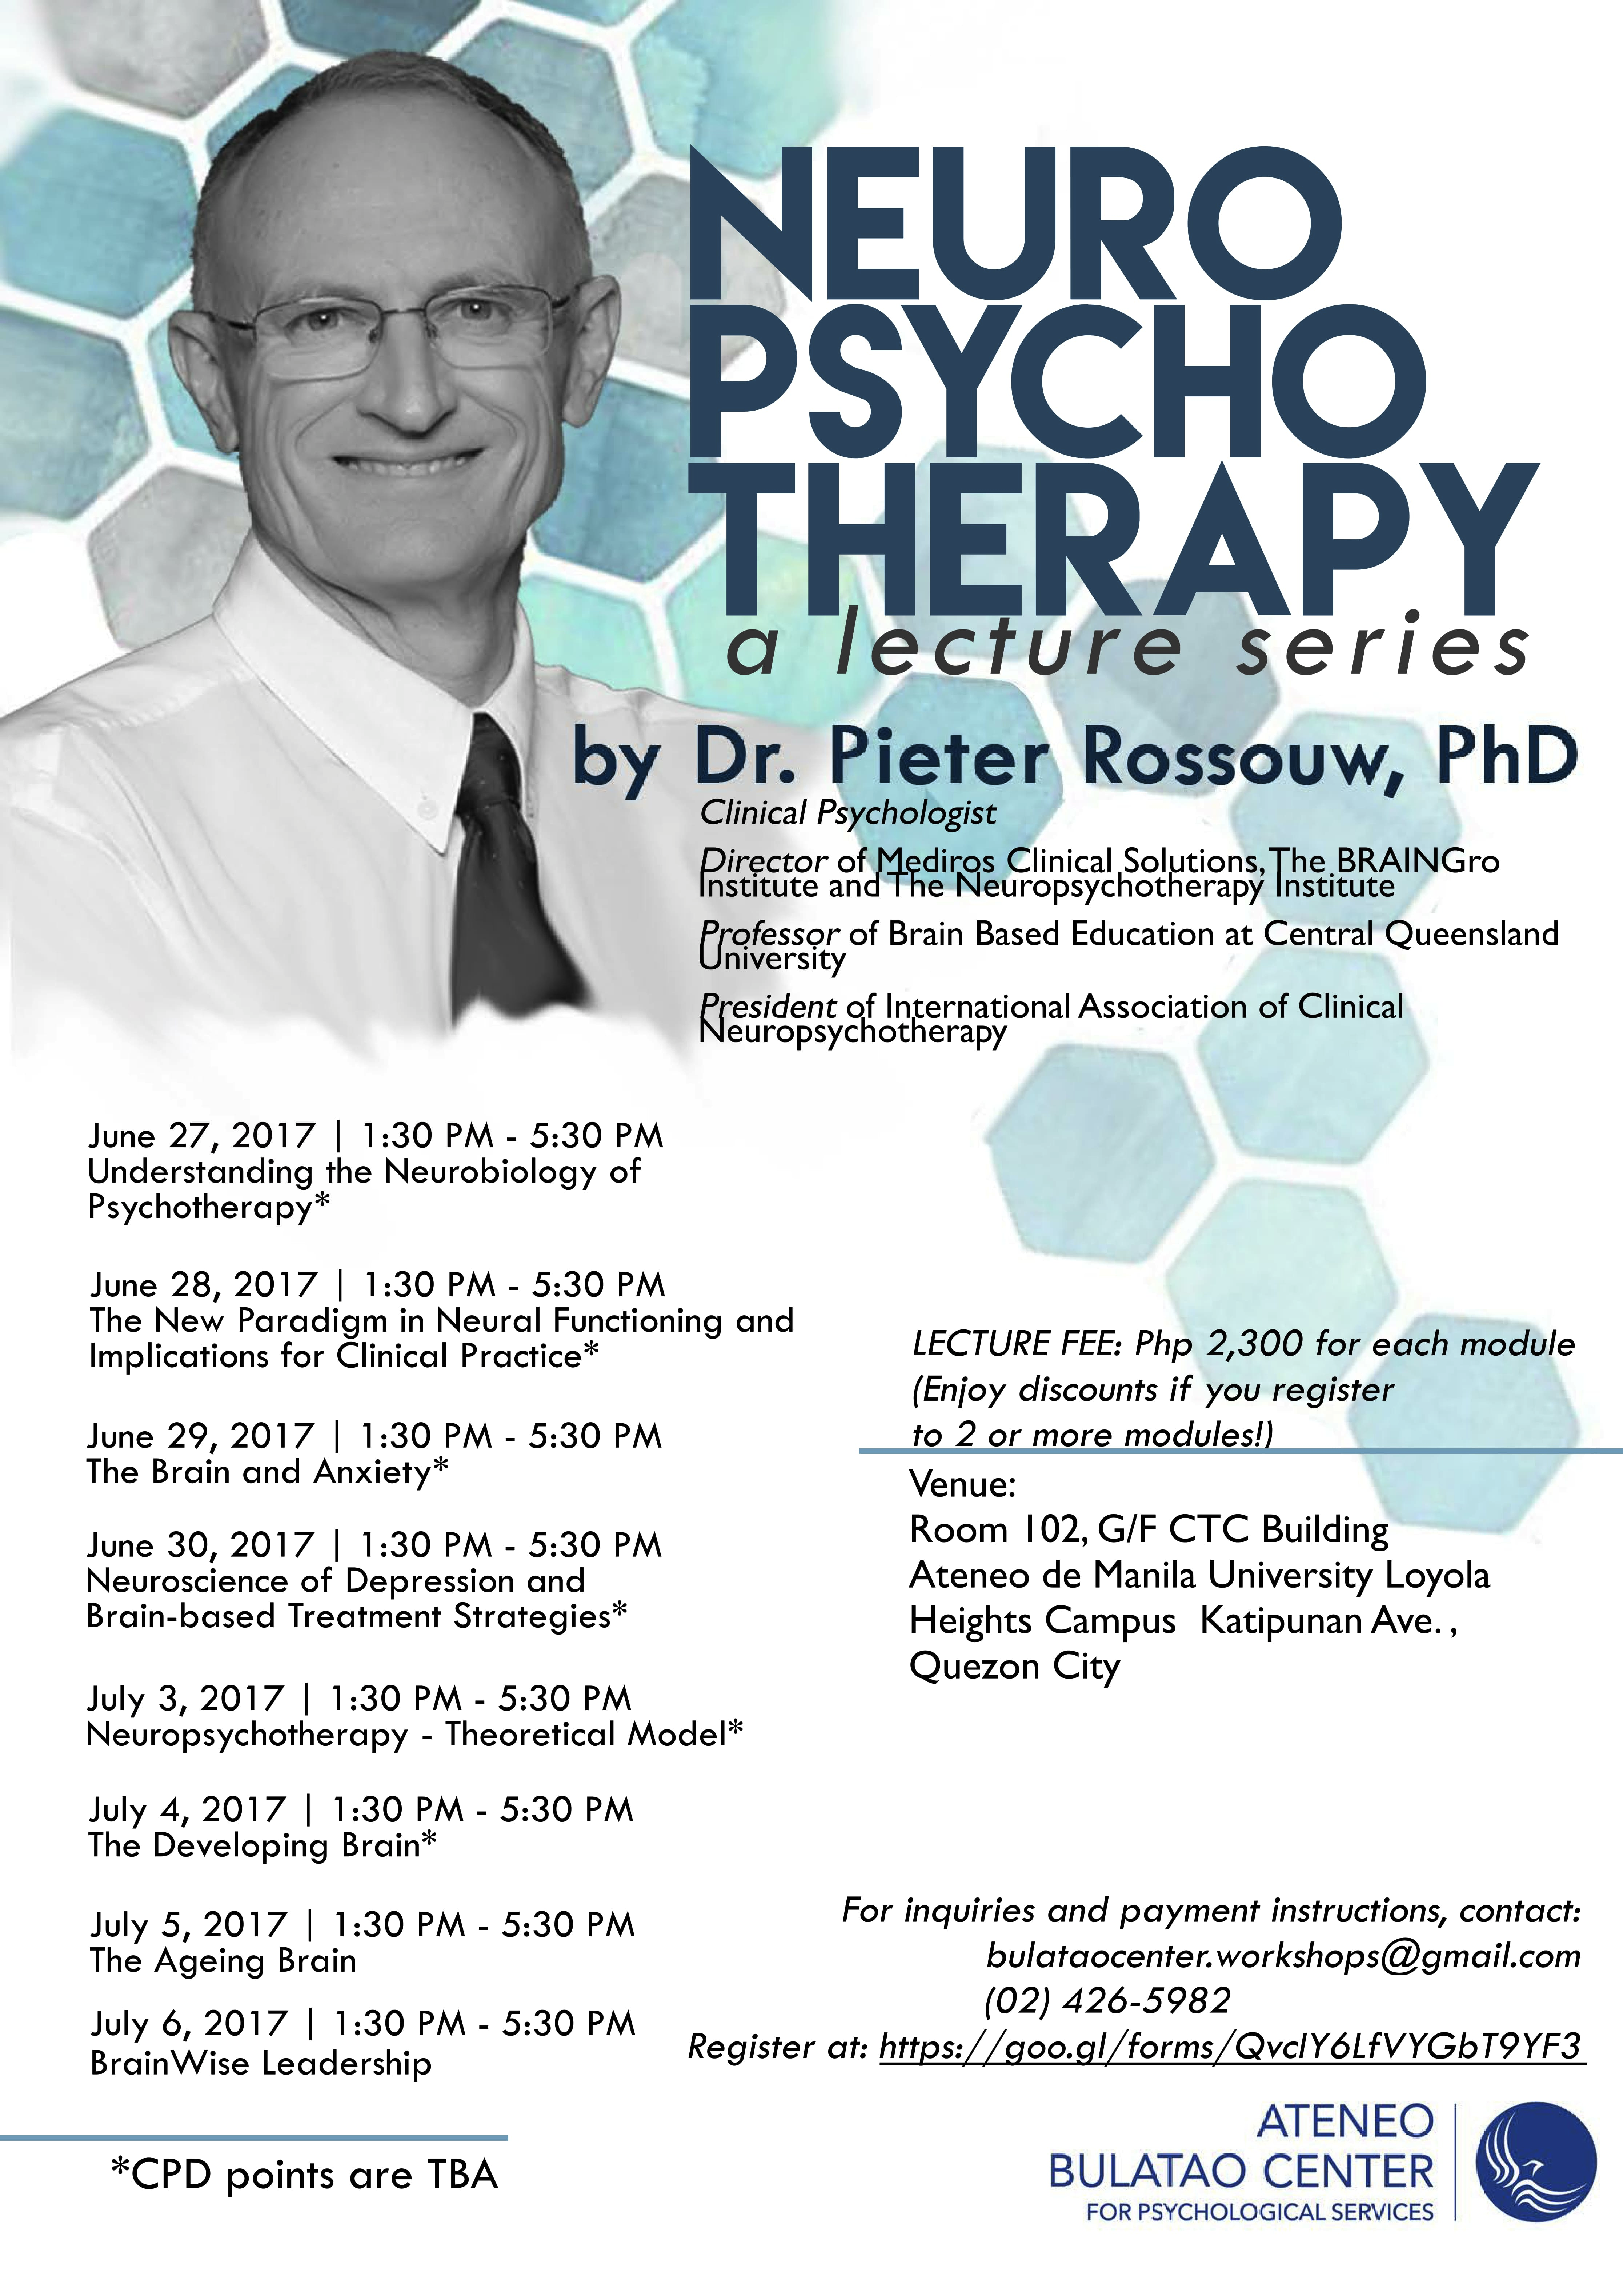 Neuropsychotherapy lecture series